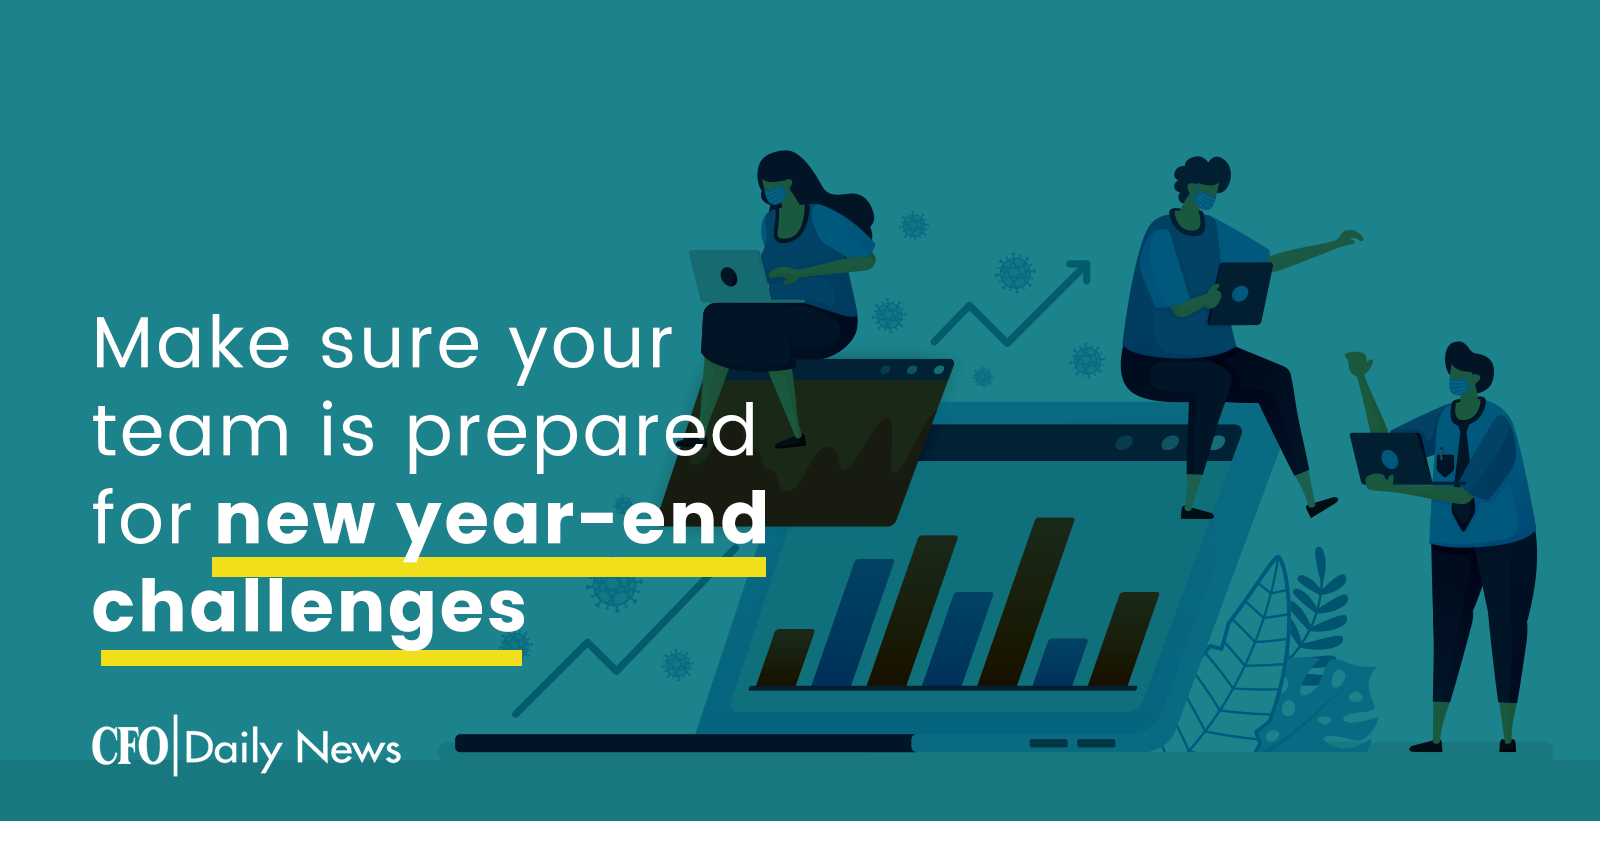 make sure your team is prepared for new year end challenges